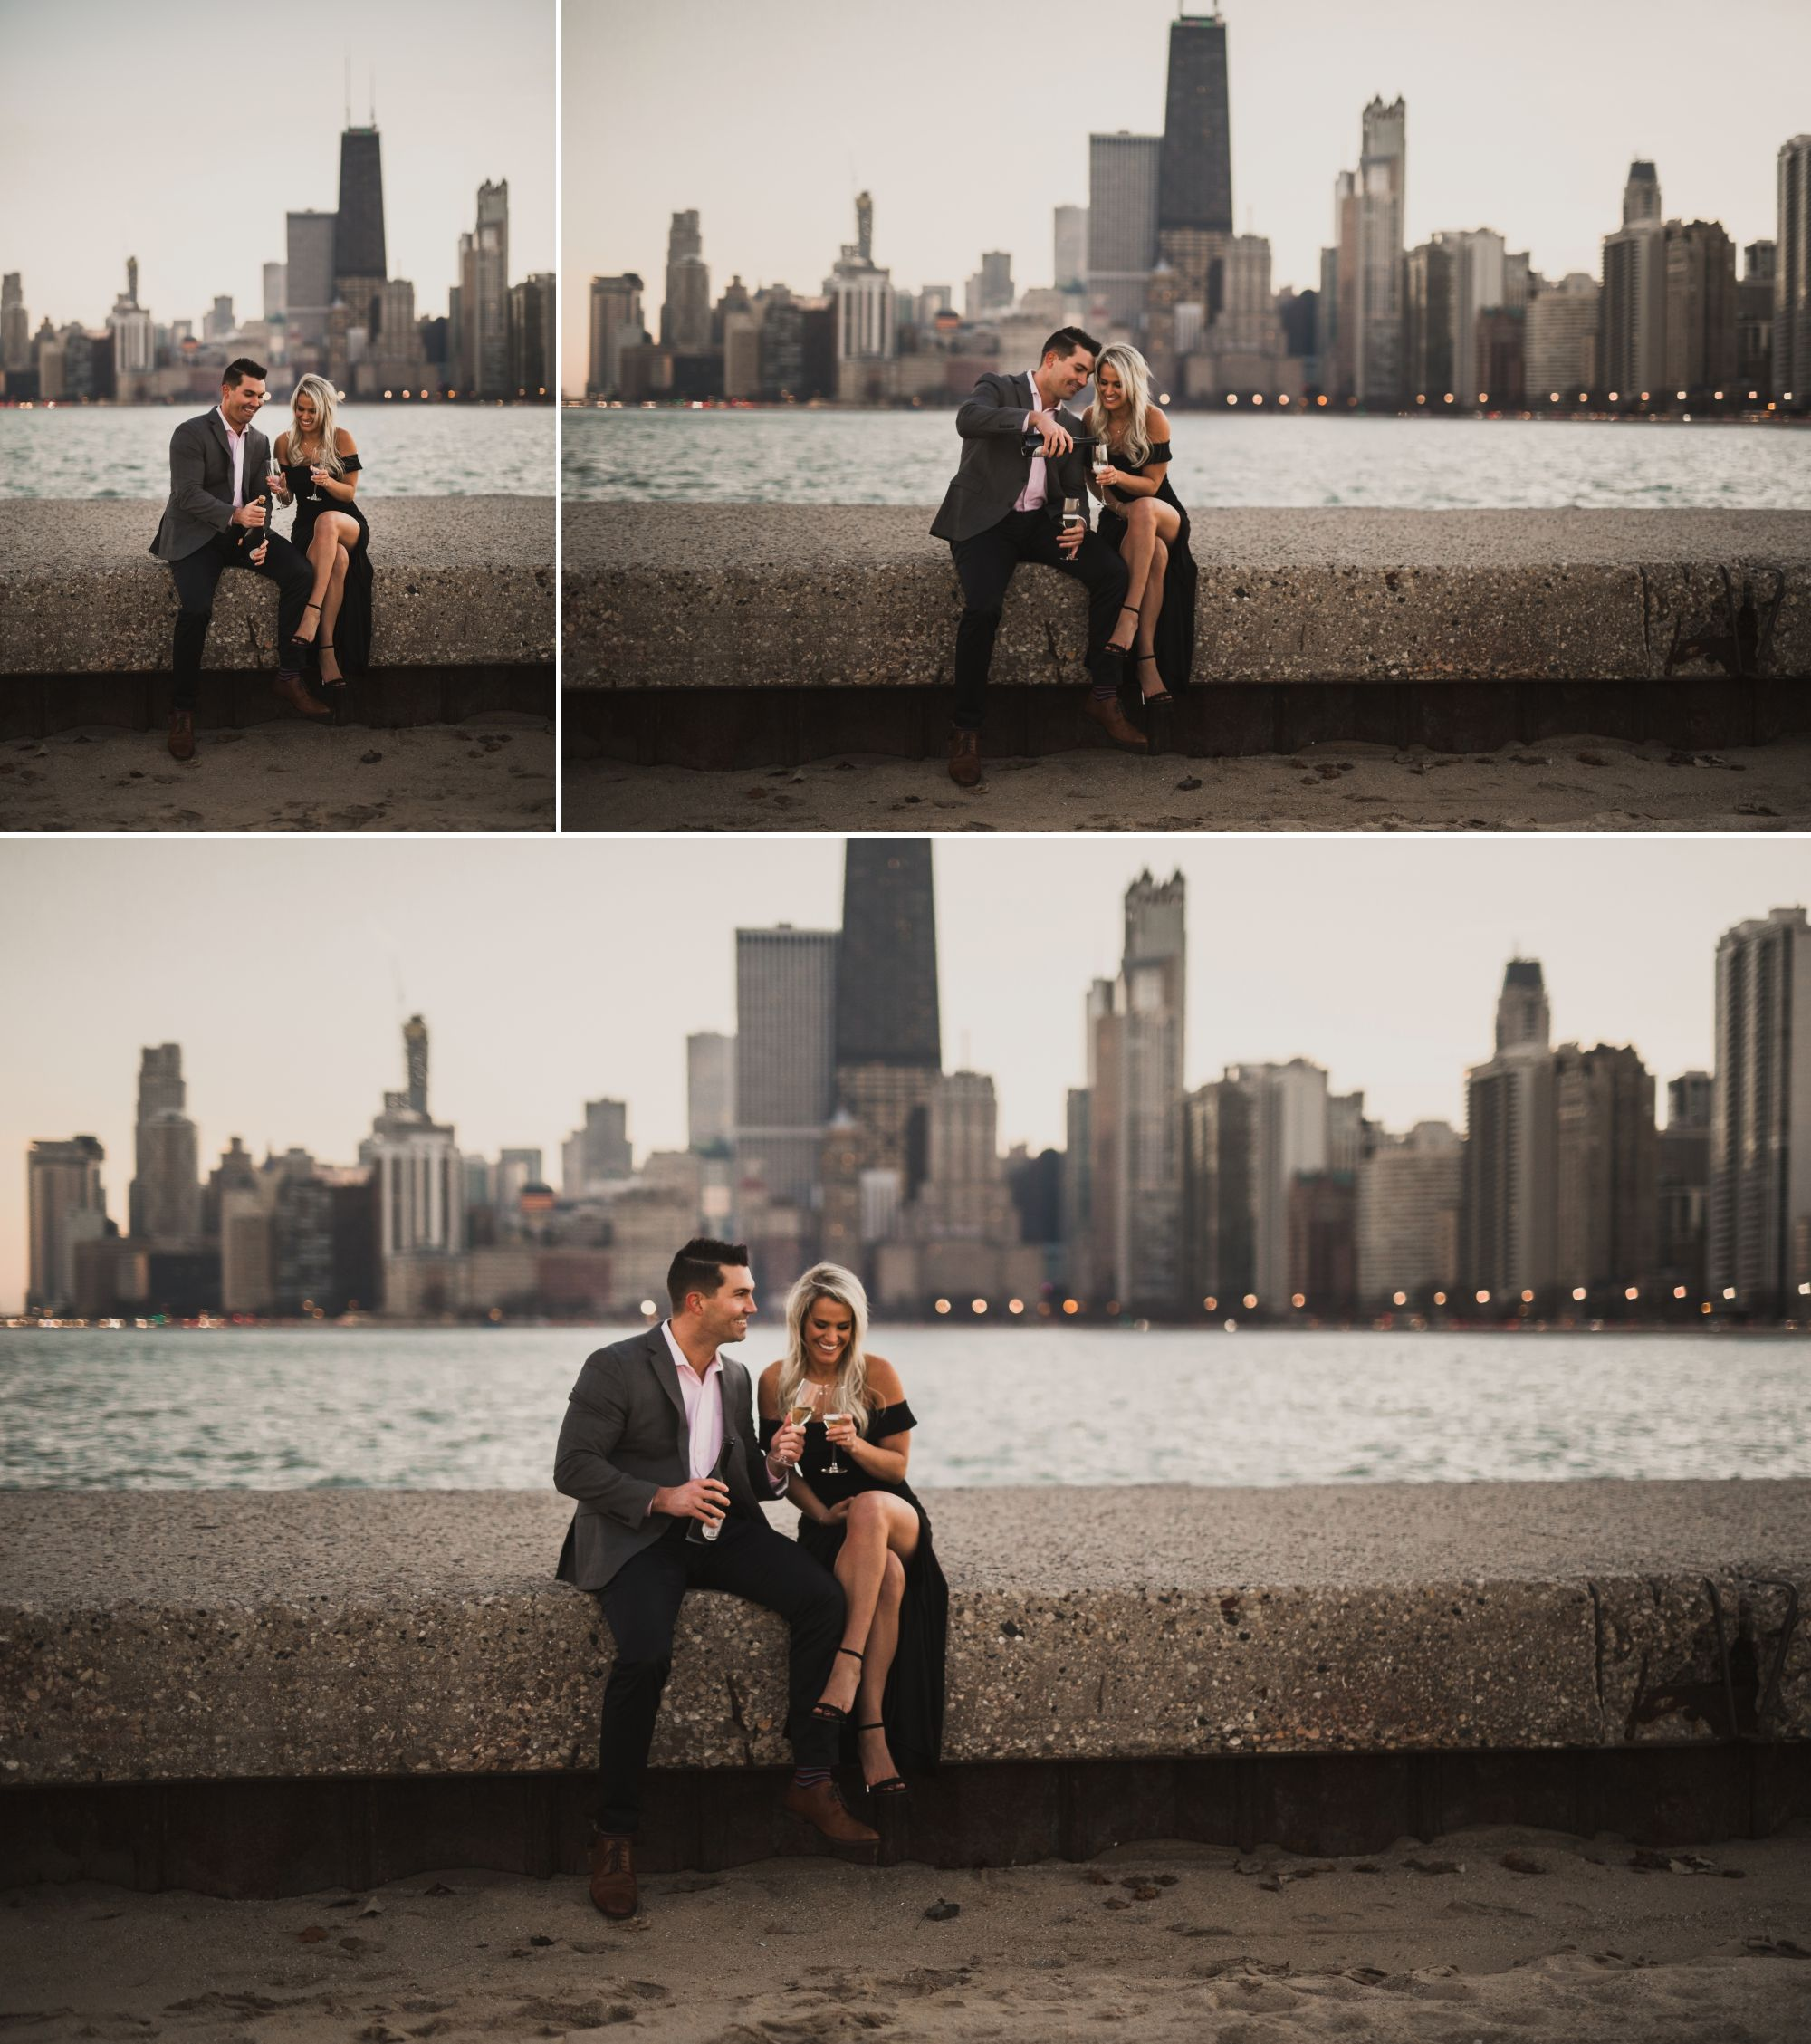 A Romantic Engagement Session In Chicago Engagement Photos Fall Chicago Engagement Photos Detroit Engagement Photos